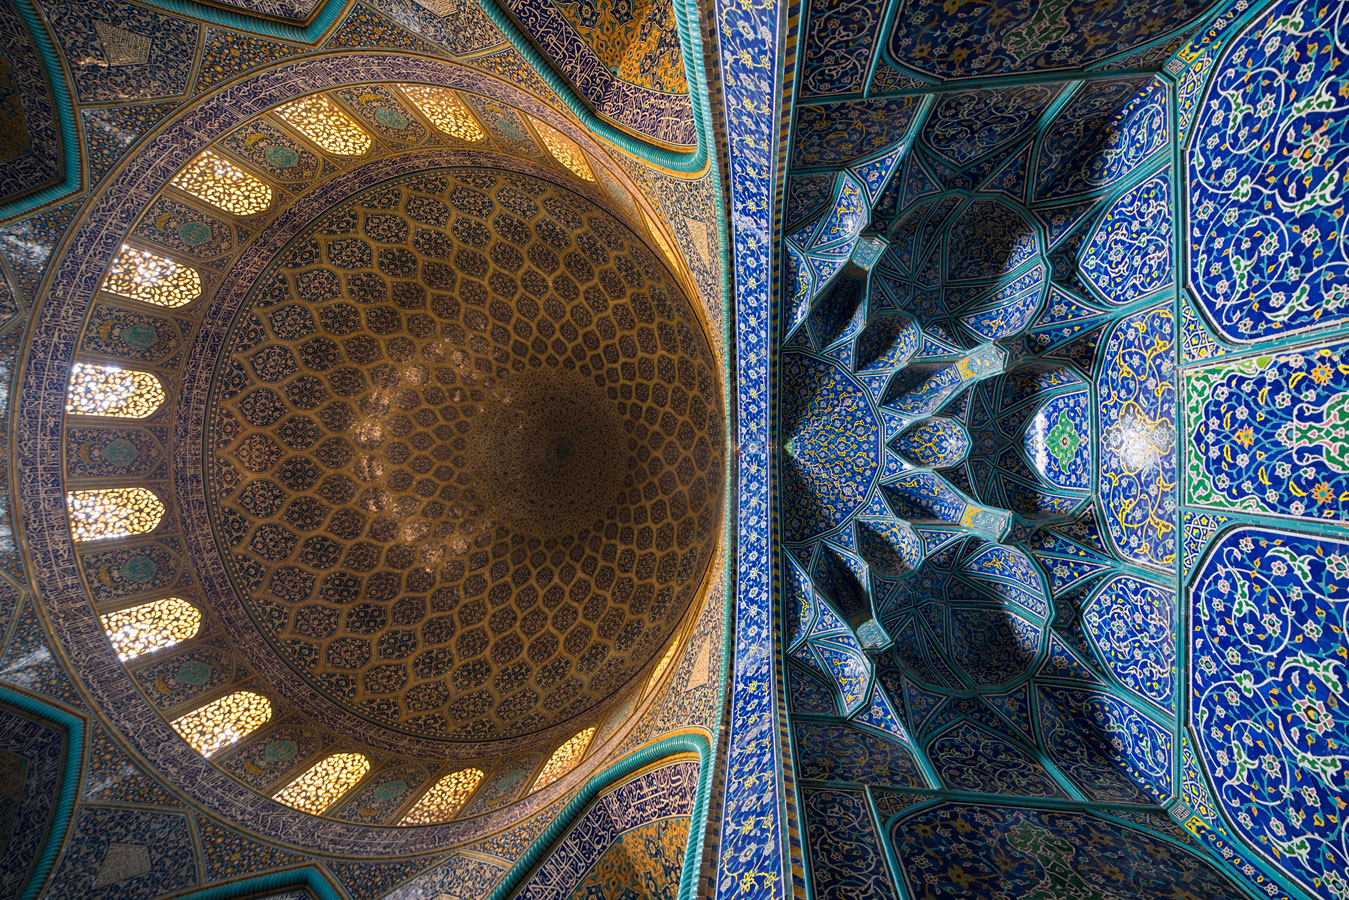 Sheikh Lotfollah Mosque, Iran, © Alireza Akhlaghi, 1st prize, Wiki Loves Monuments Photo Contest